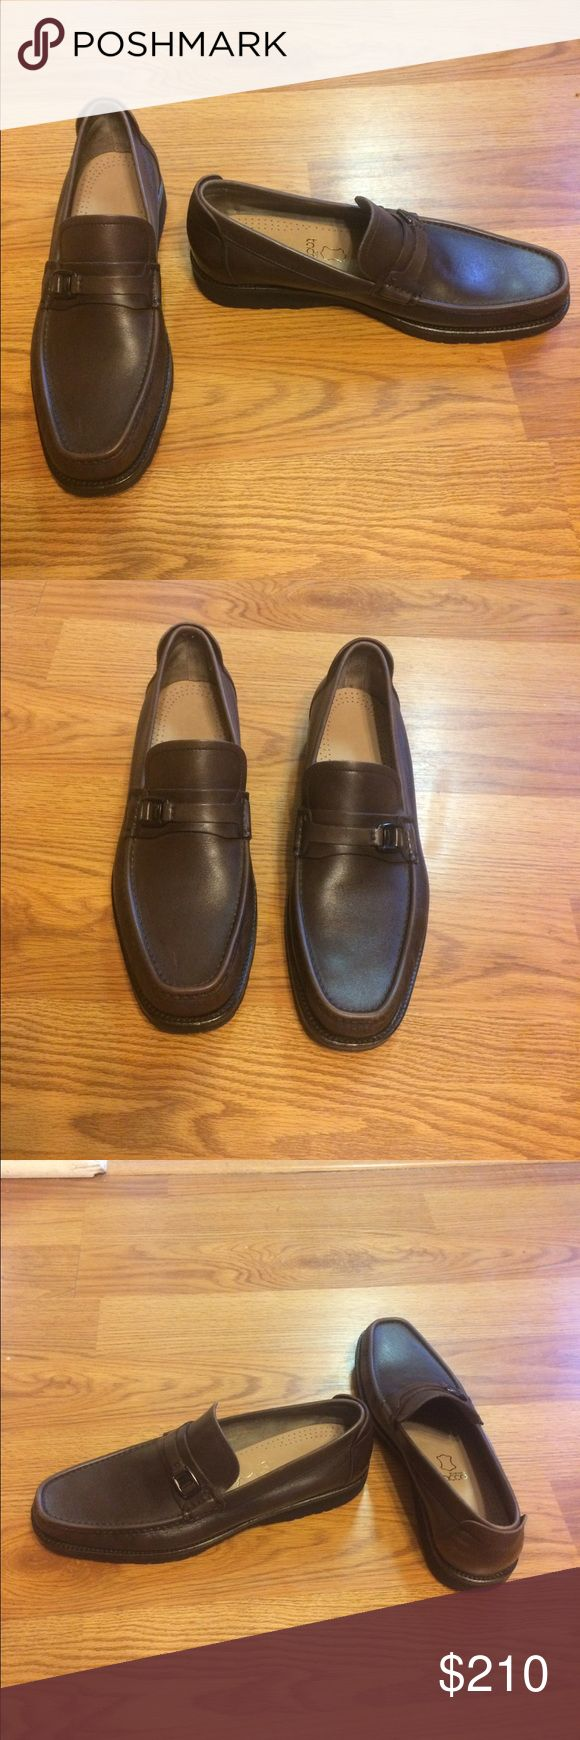 Salvatore Ferragamo loafers Classic and comfy, men's designer leather Bit loafers made in Italy! They are chocolate brown with rubber soles and ornament logo on straps! Gently worn in great condition but inside soles are newly replaced. Salvatore Ferragamo Shoes Loafers & Slip-Ons